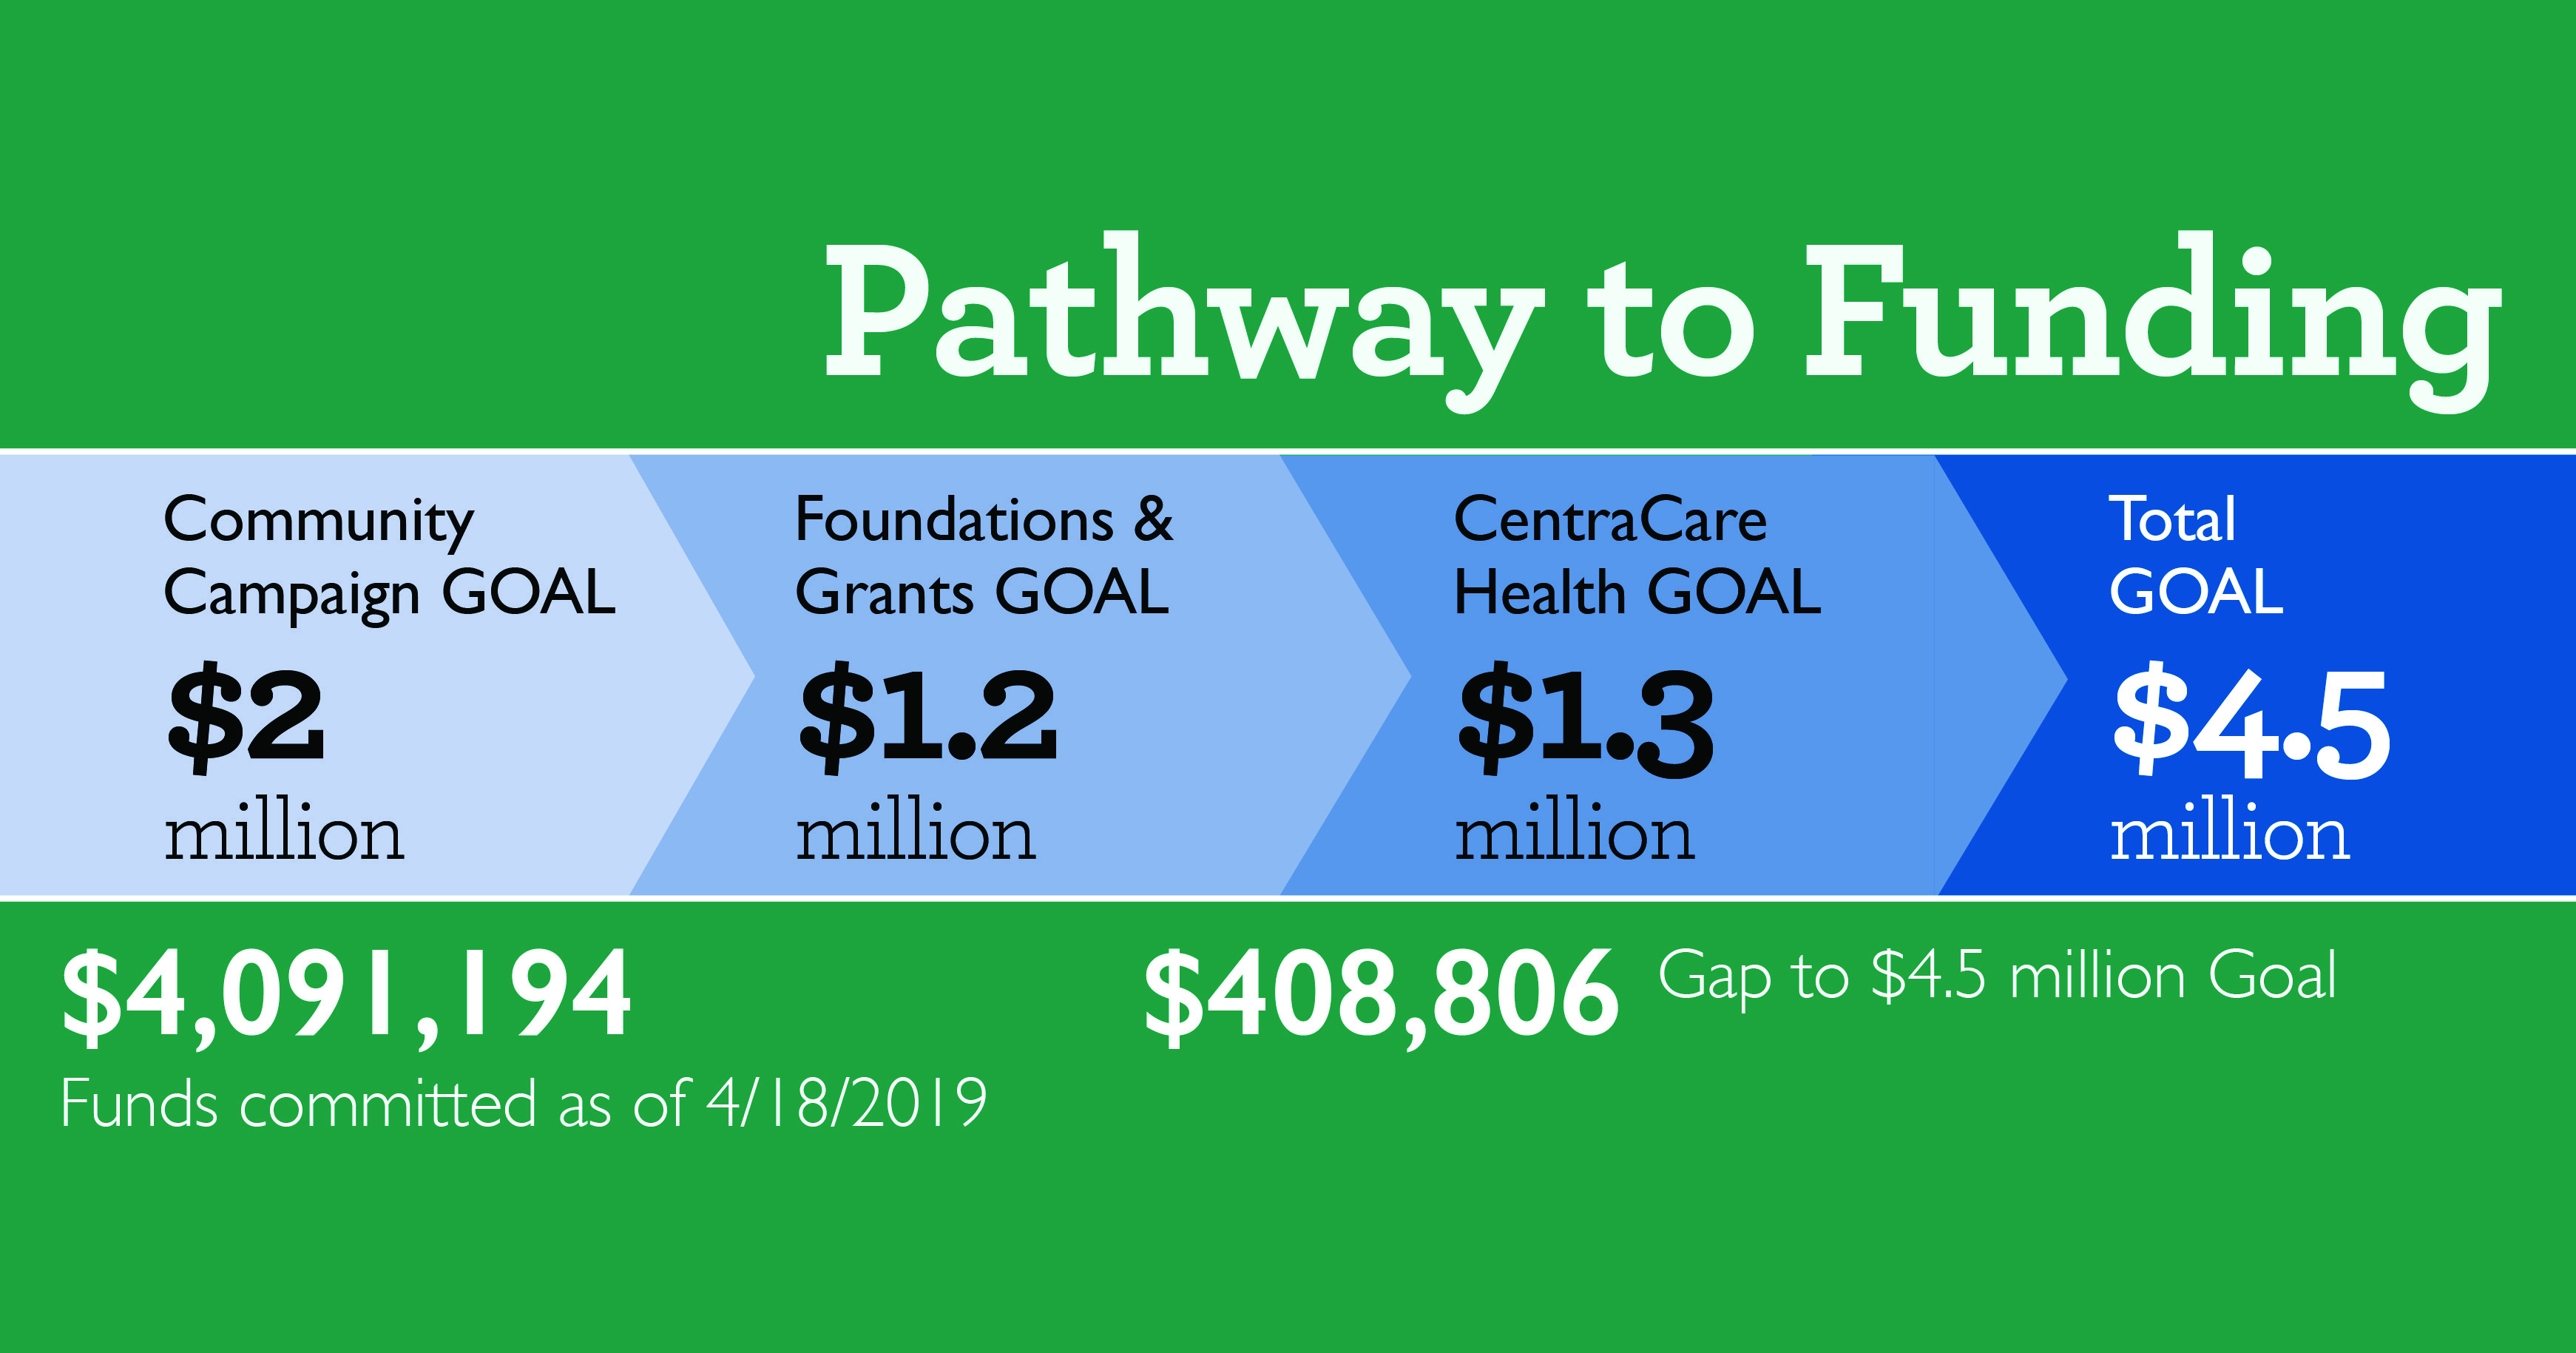 Pathway to Funding